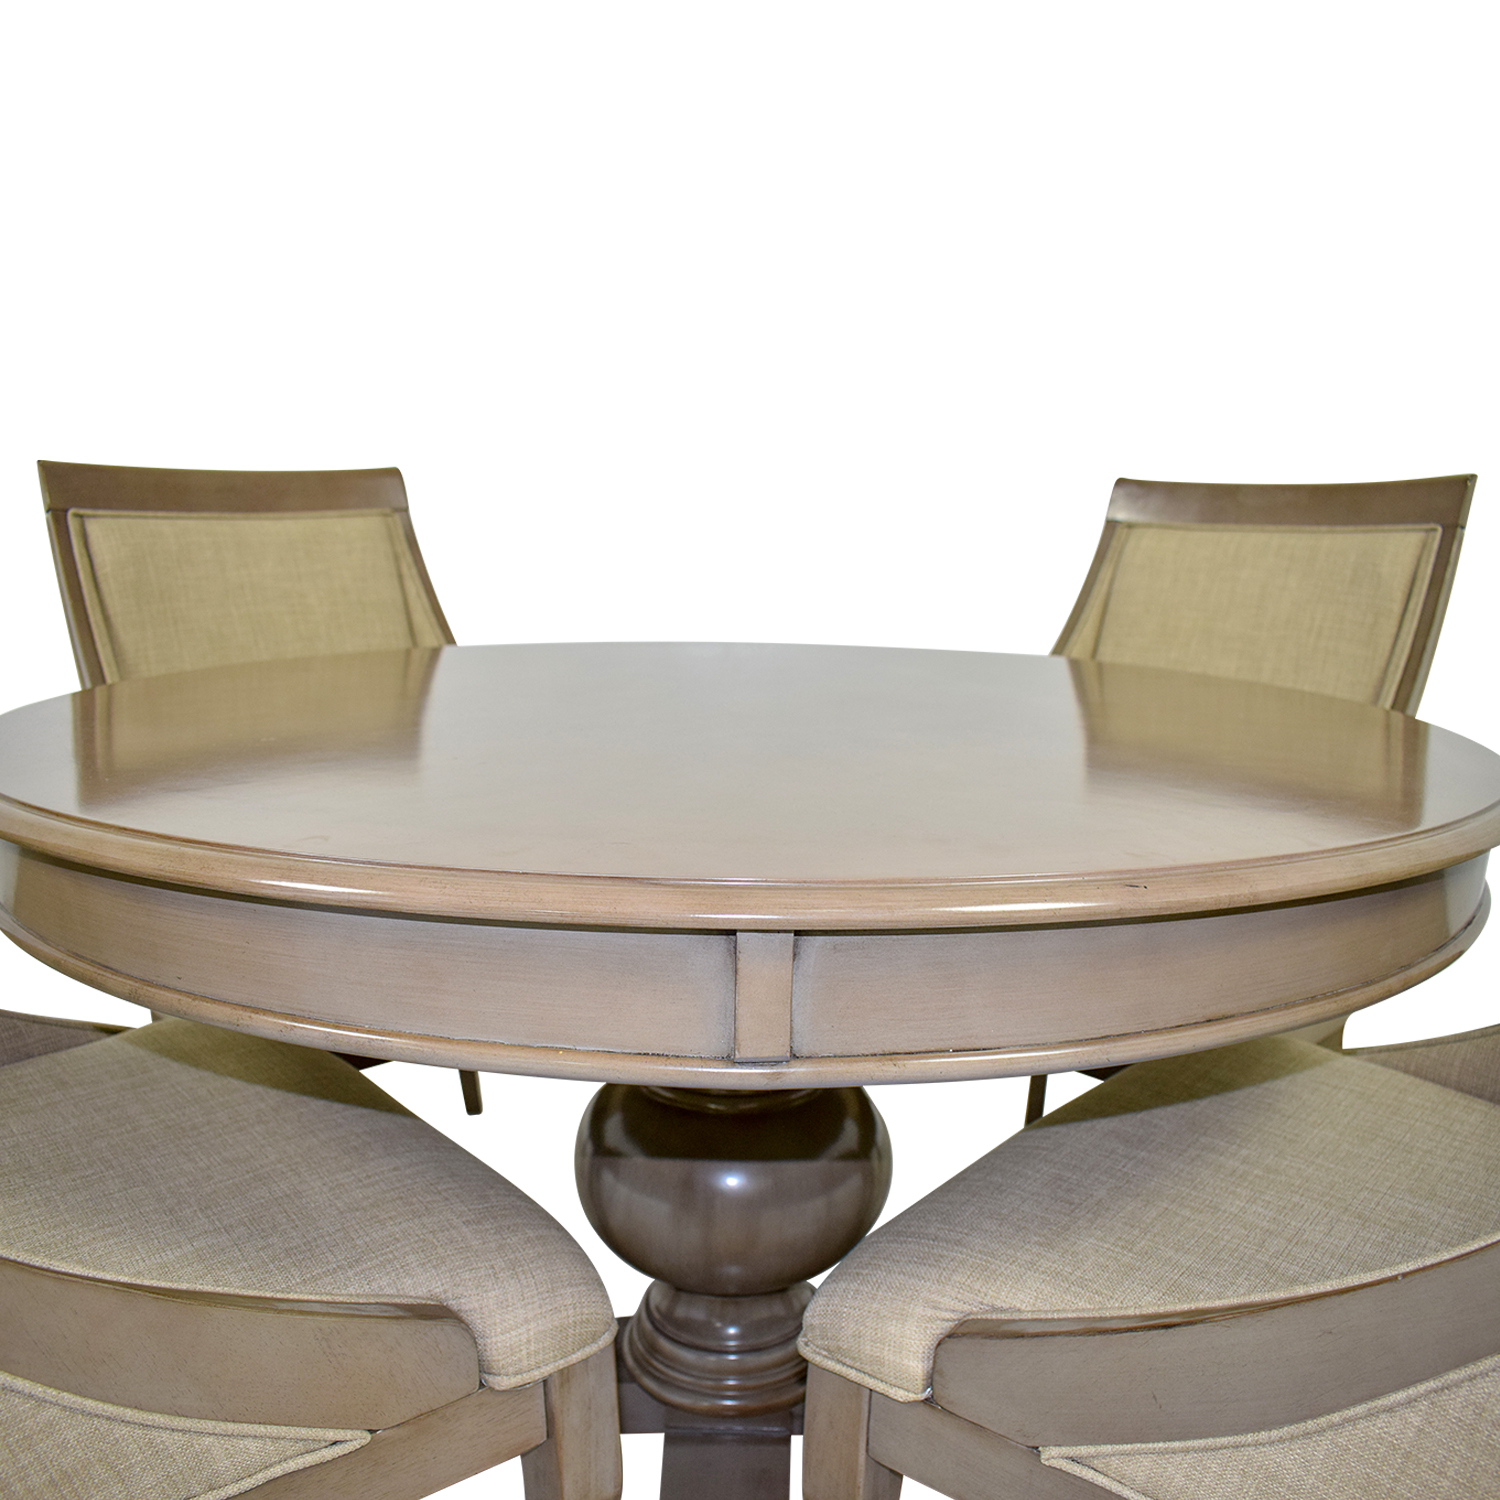 72 Off Bob S Discount Furniture Bob S Furniture Gatsby Round Dining Set With Swoop Chairs Tables